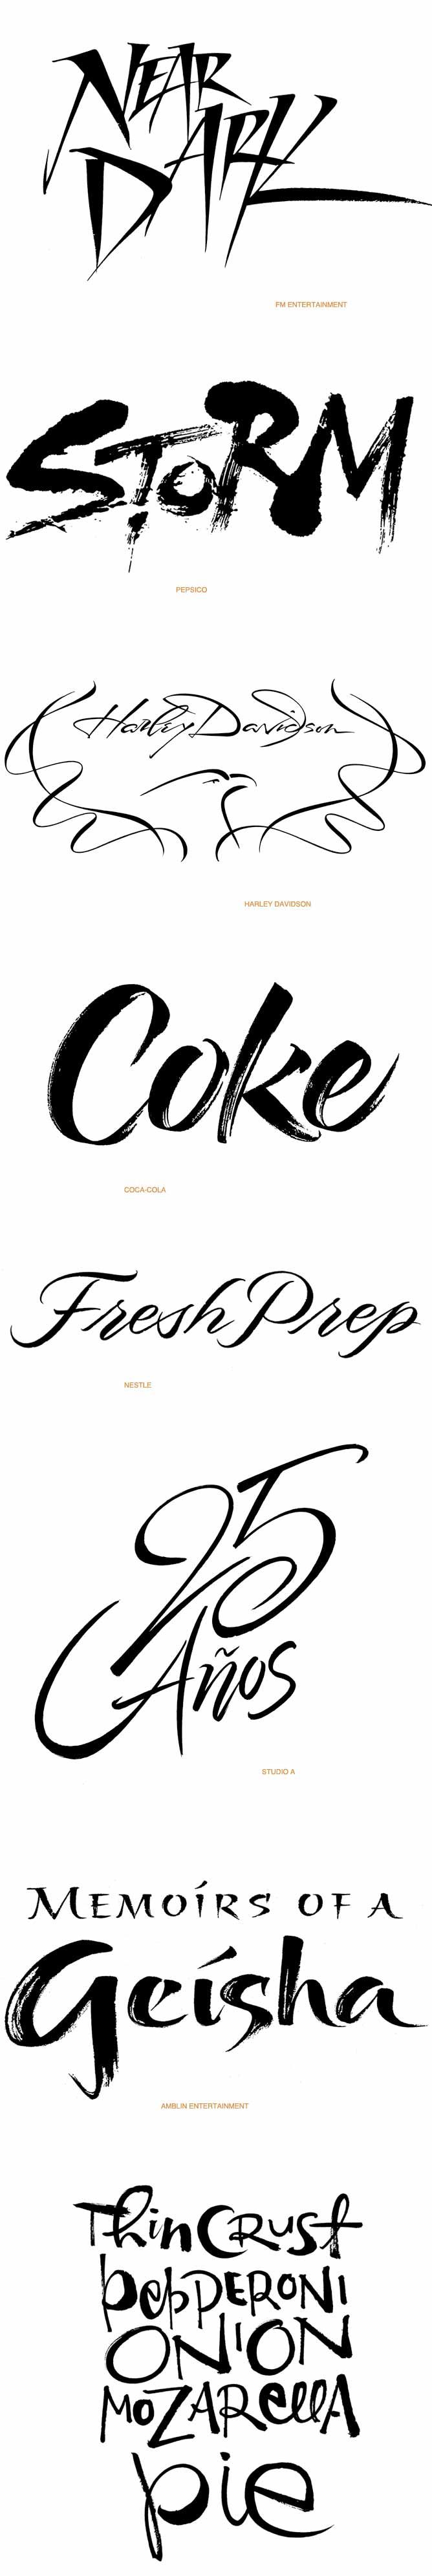 Contemporary Script Lettering Portfolio One Lettering Brush Designwww.iskradesign.com/ www.behance.net/... IMPORTANT!!! These are unique examples of custom lettering done by IskraDesign for her clients. They are NOT free clipart and may not be used as such